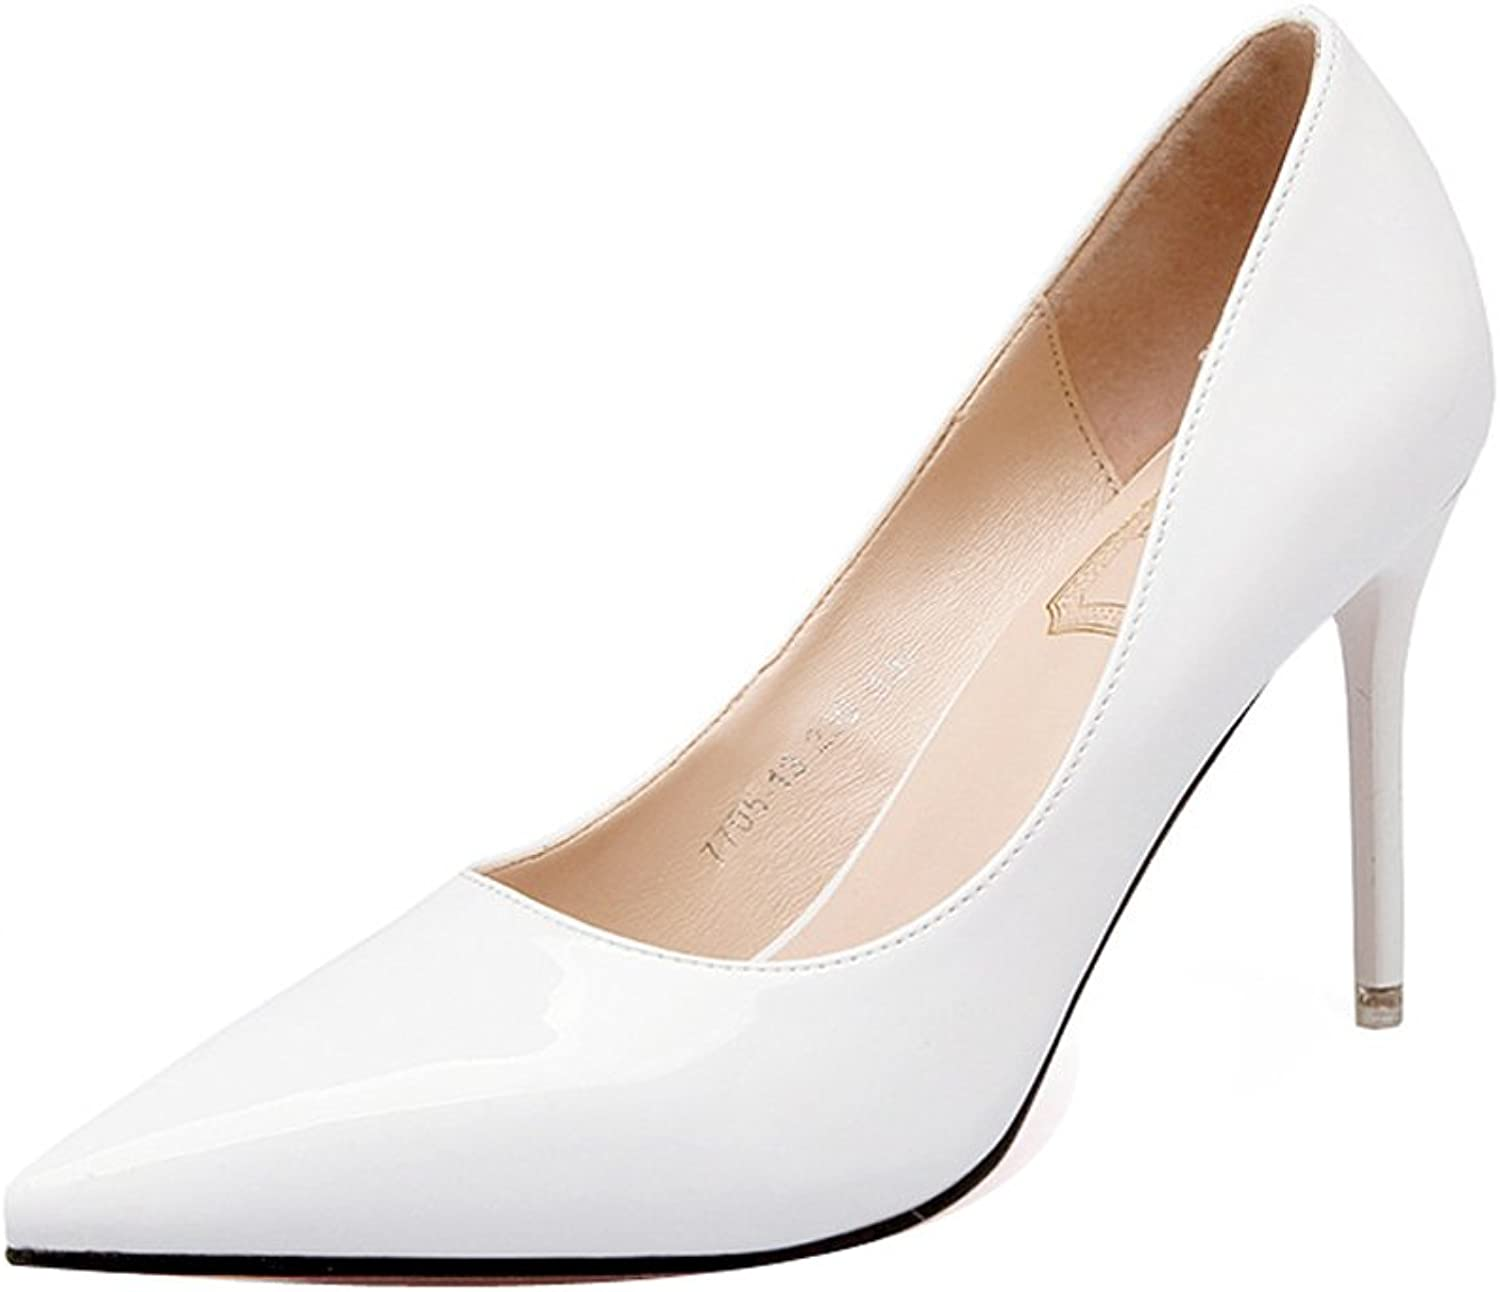 Ladola Womens Professional Pointed-Toe Spikes Stilettos Urethane Pumps shoes